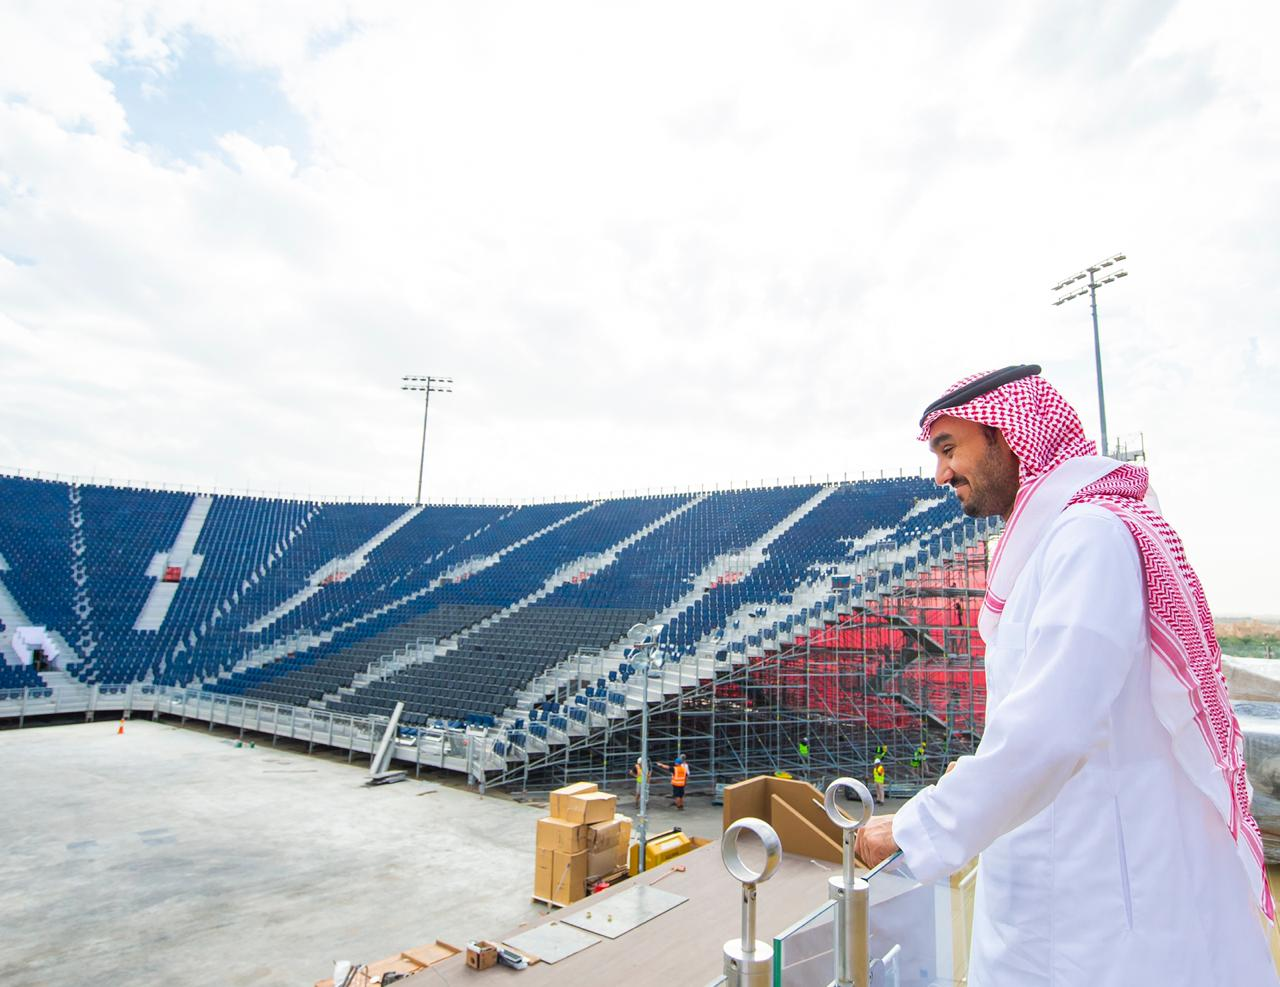 SAUDI ARABIA'S DIRIYAH TENNIS CUP WILL GIVE BEST MENS PLAYERS ON PLANET STRONG PREPARATION FOR 2020 SEASON, SAYS WORLD NUMBER FIVE